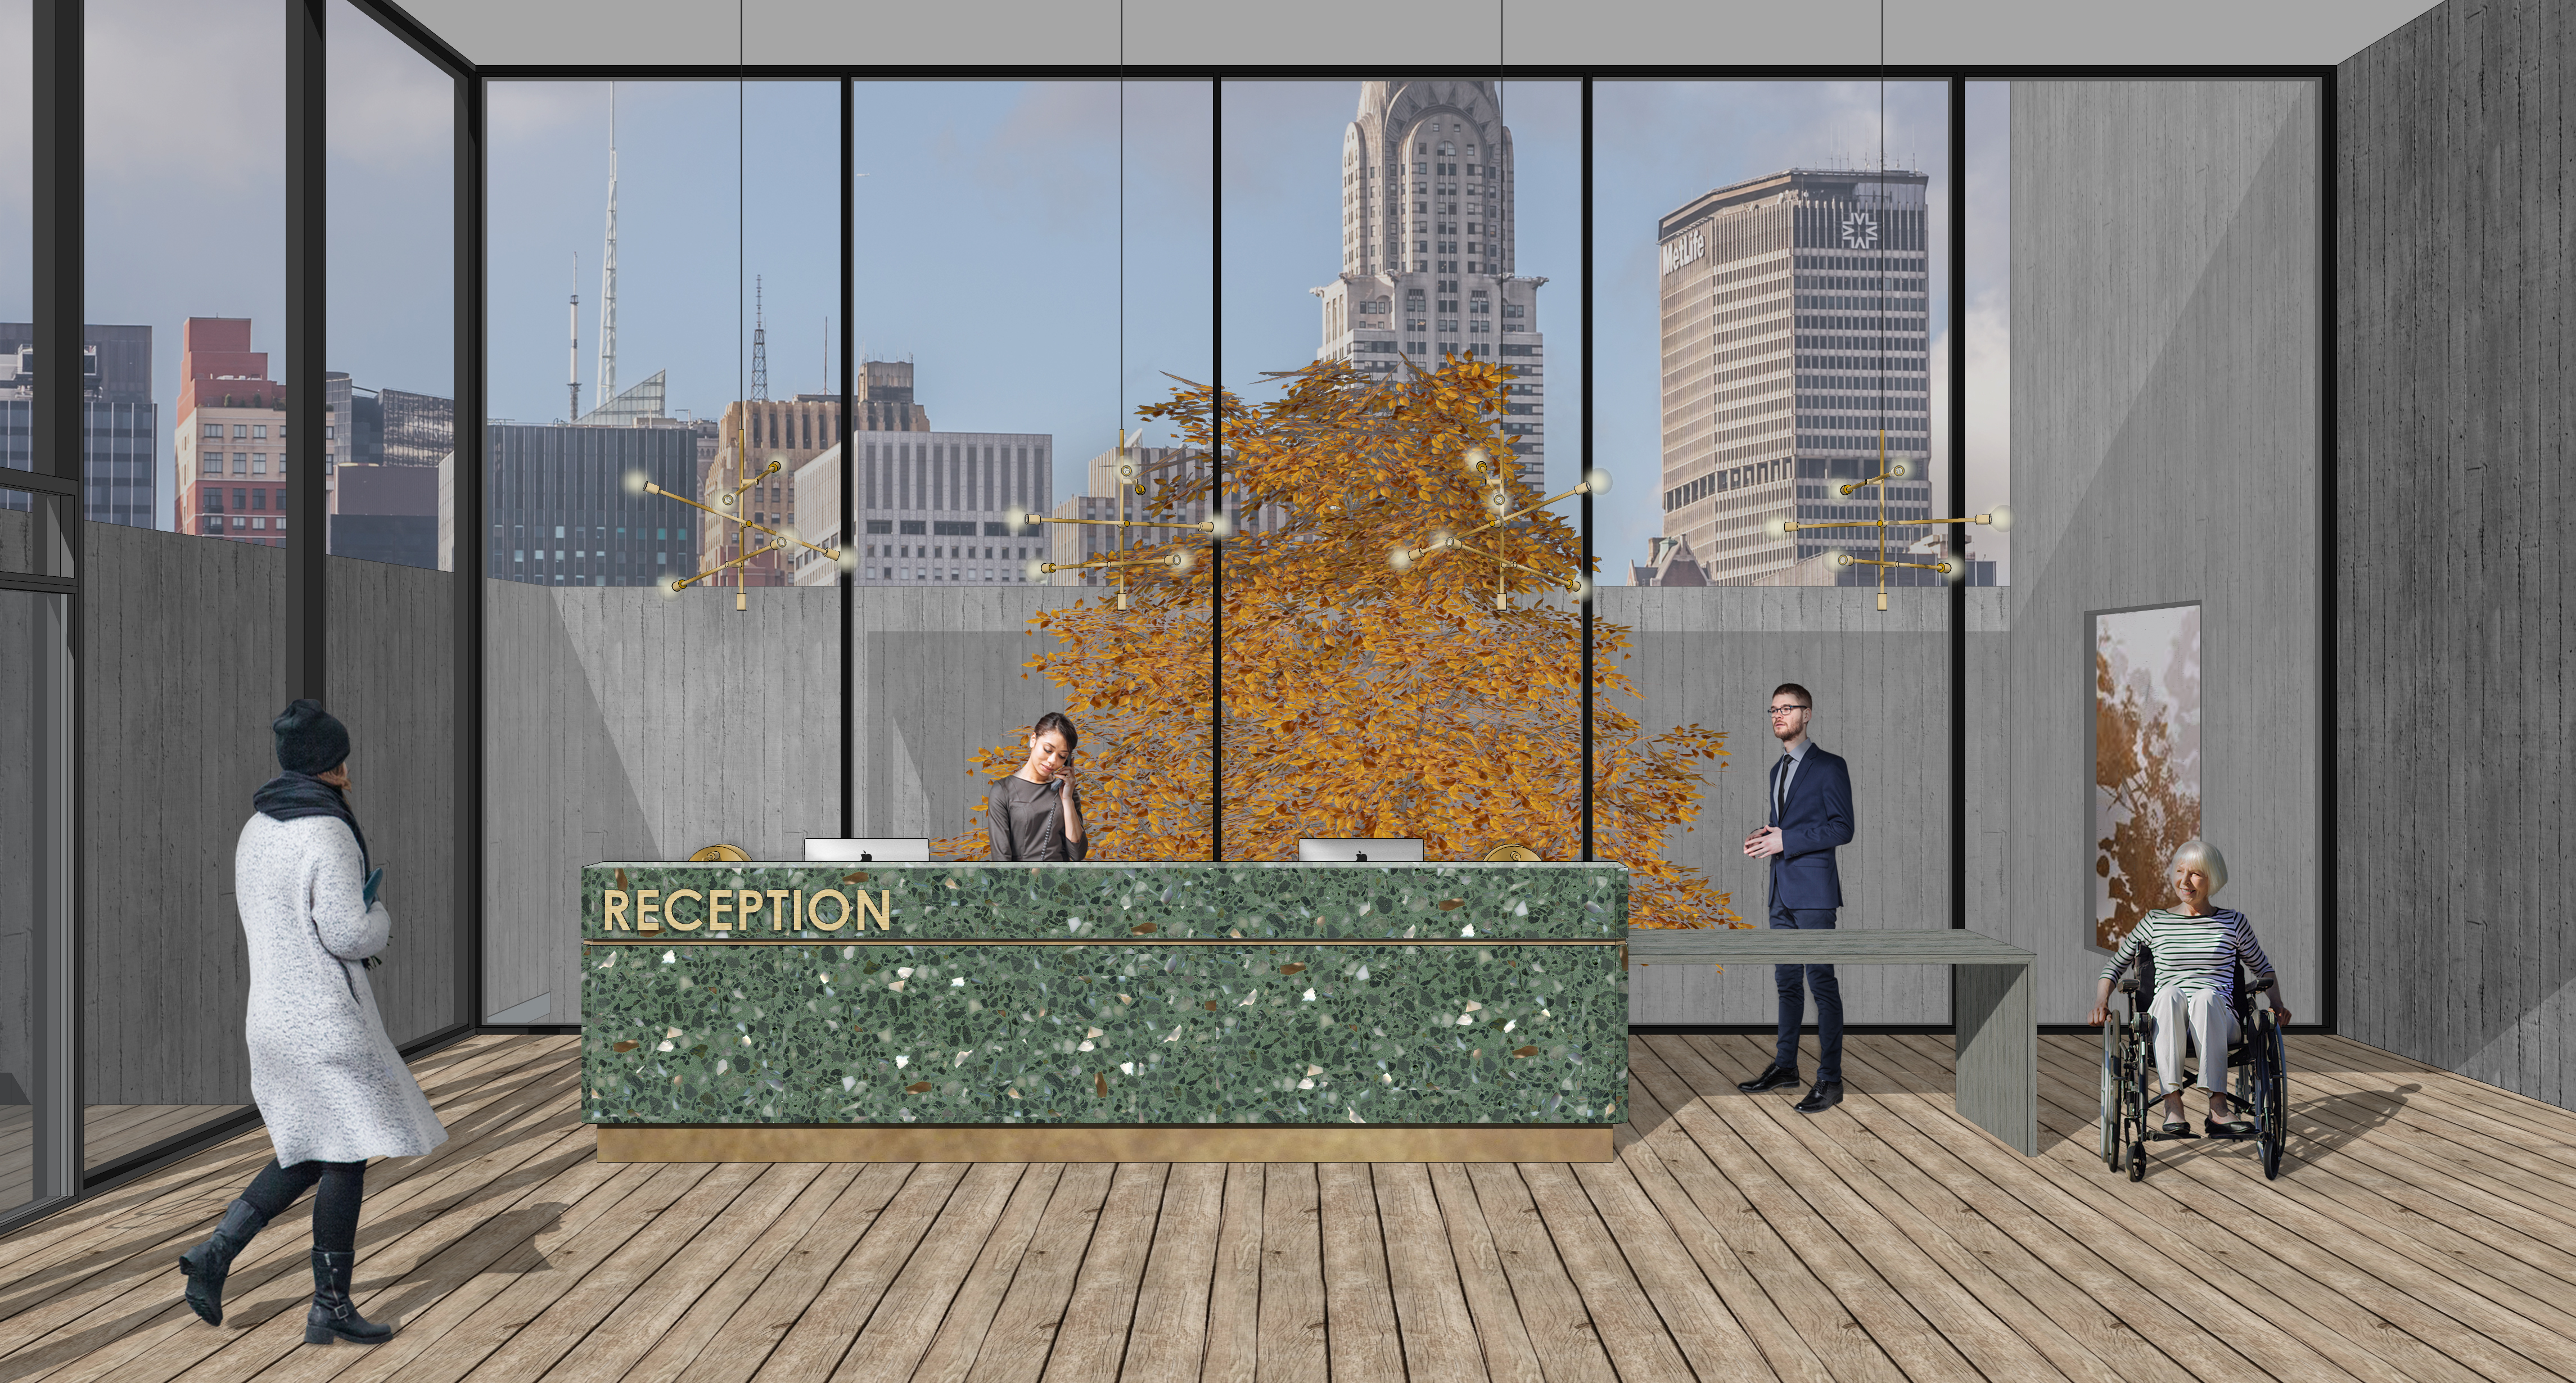 Rendered Visual of Reception Desk - Siobhan Hughes